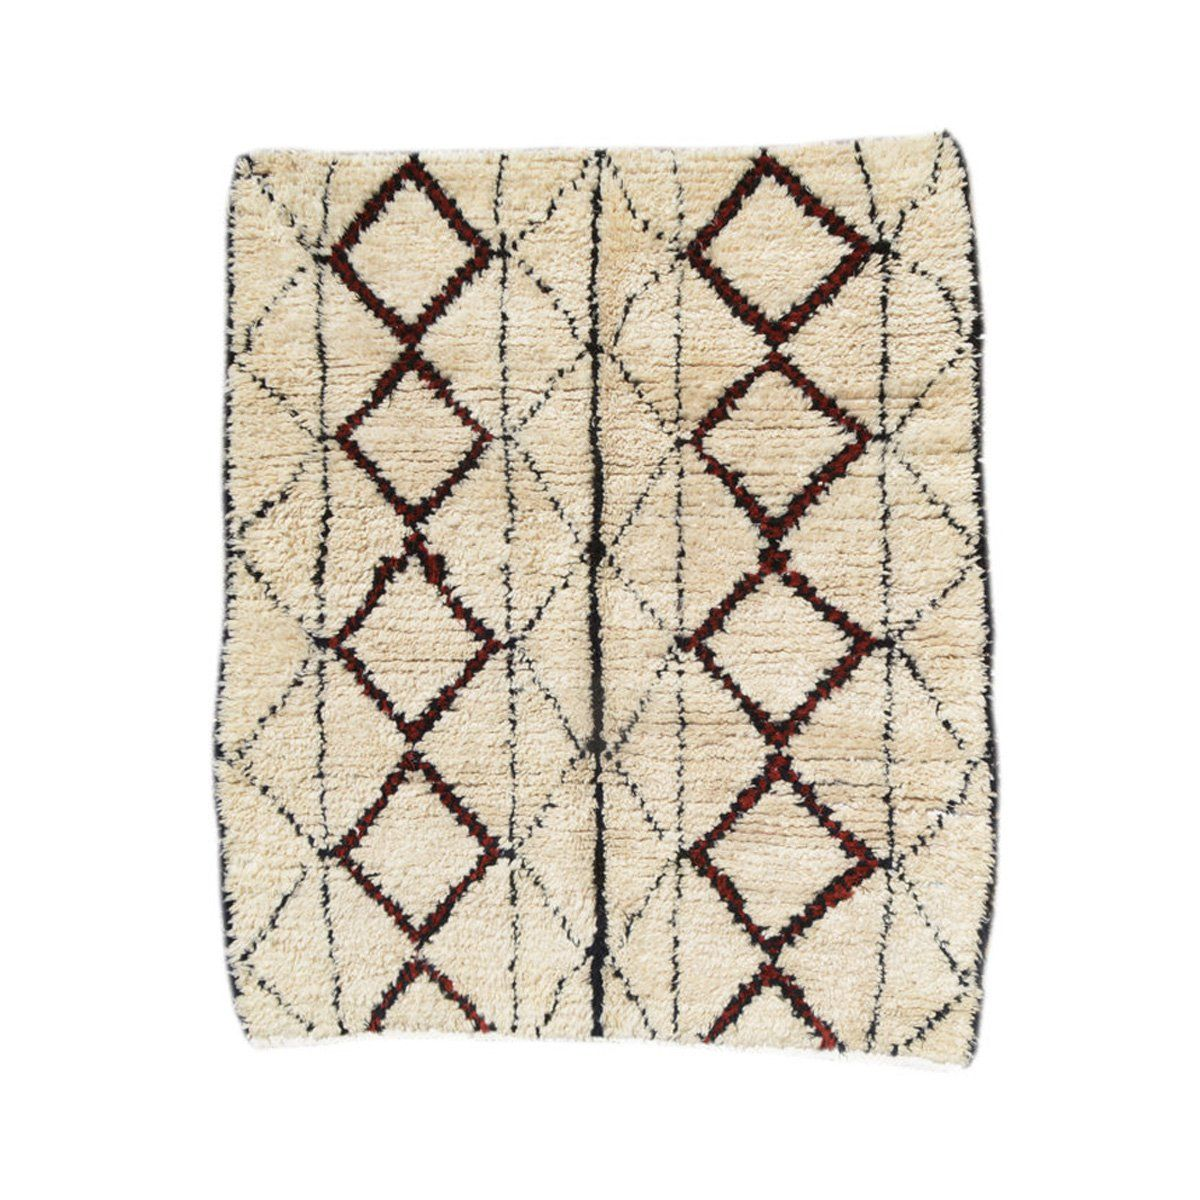 A one-of-a-kind, handmade rug, individually selected in Morocco.